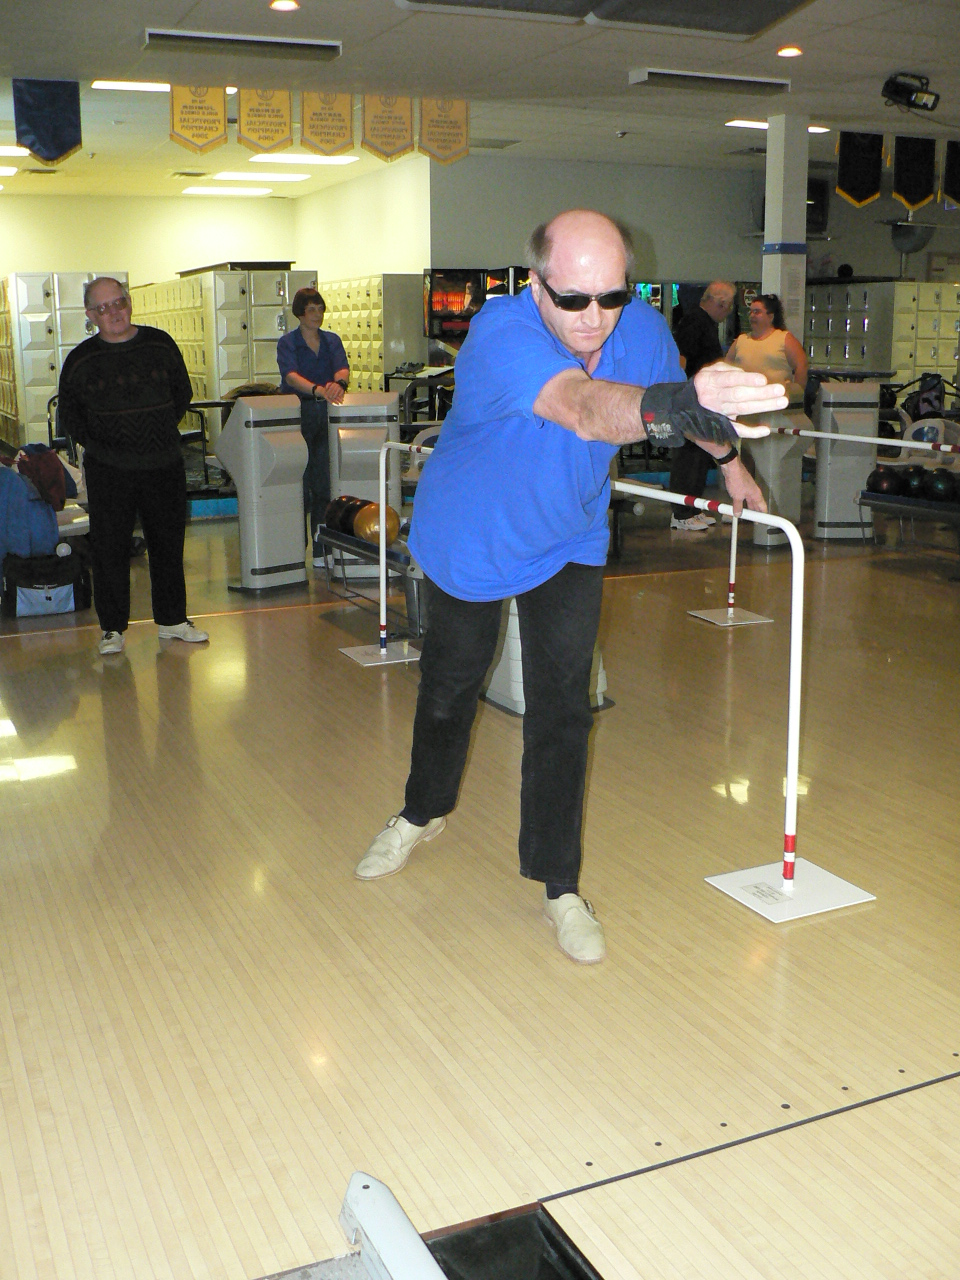 totally blind bowler using guide rail to bowl